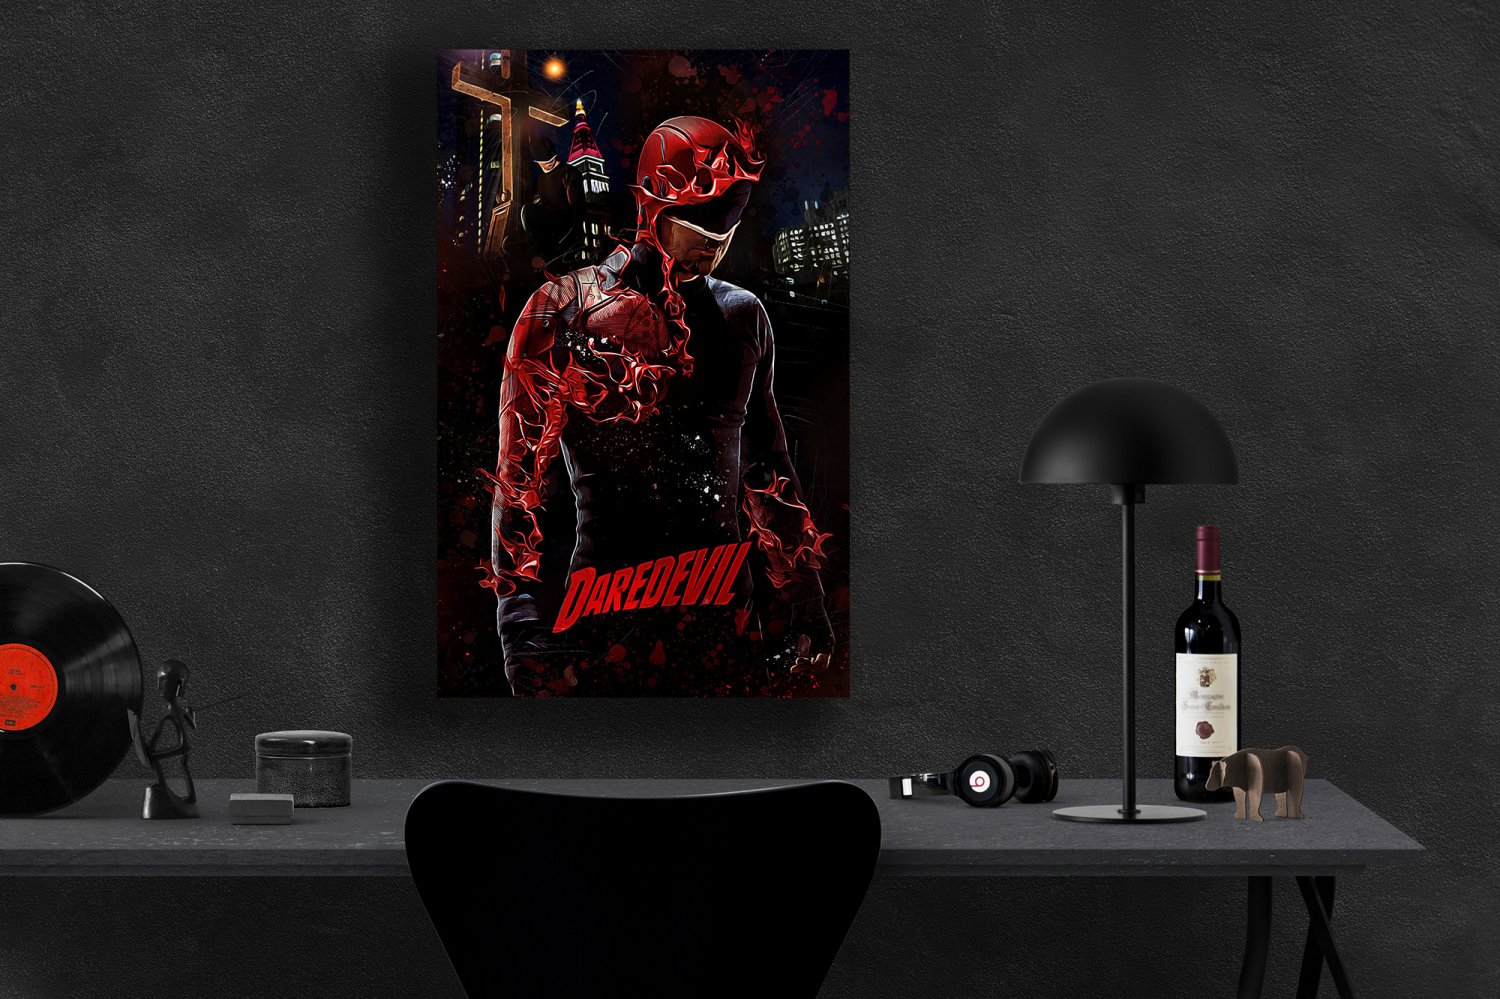 Daredevil, Charlie Cox, Matt Murdock  13x19 inches Canvas Print